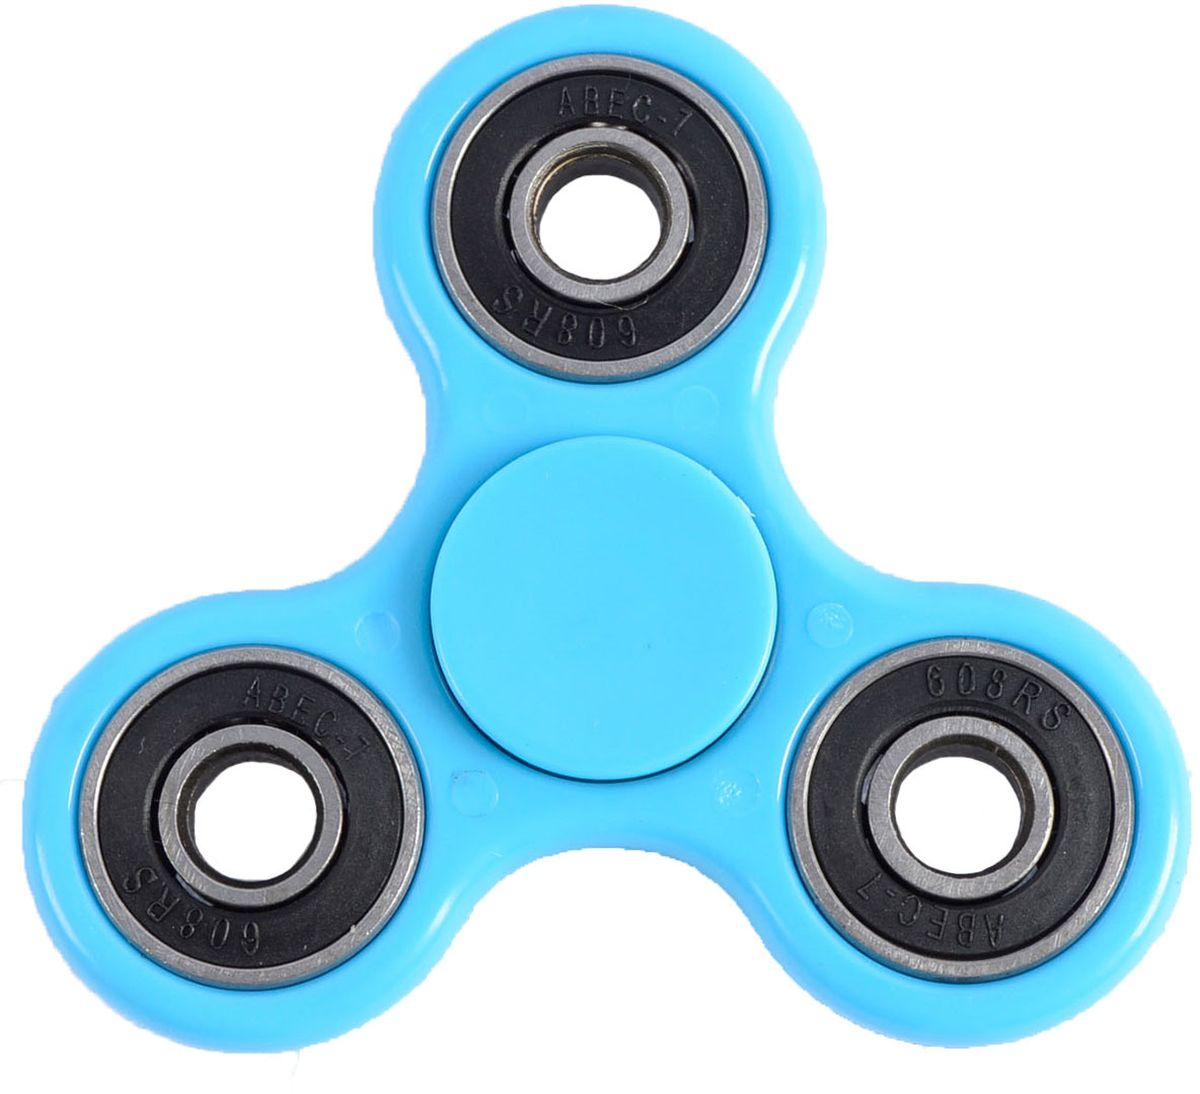 Fidget Spinner Спиннер цвет синий colorful hexagon fidget spinner adhd stress relief toy relaxation gift for adults